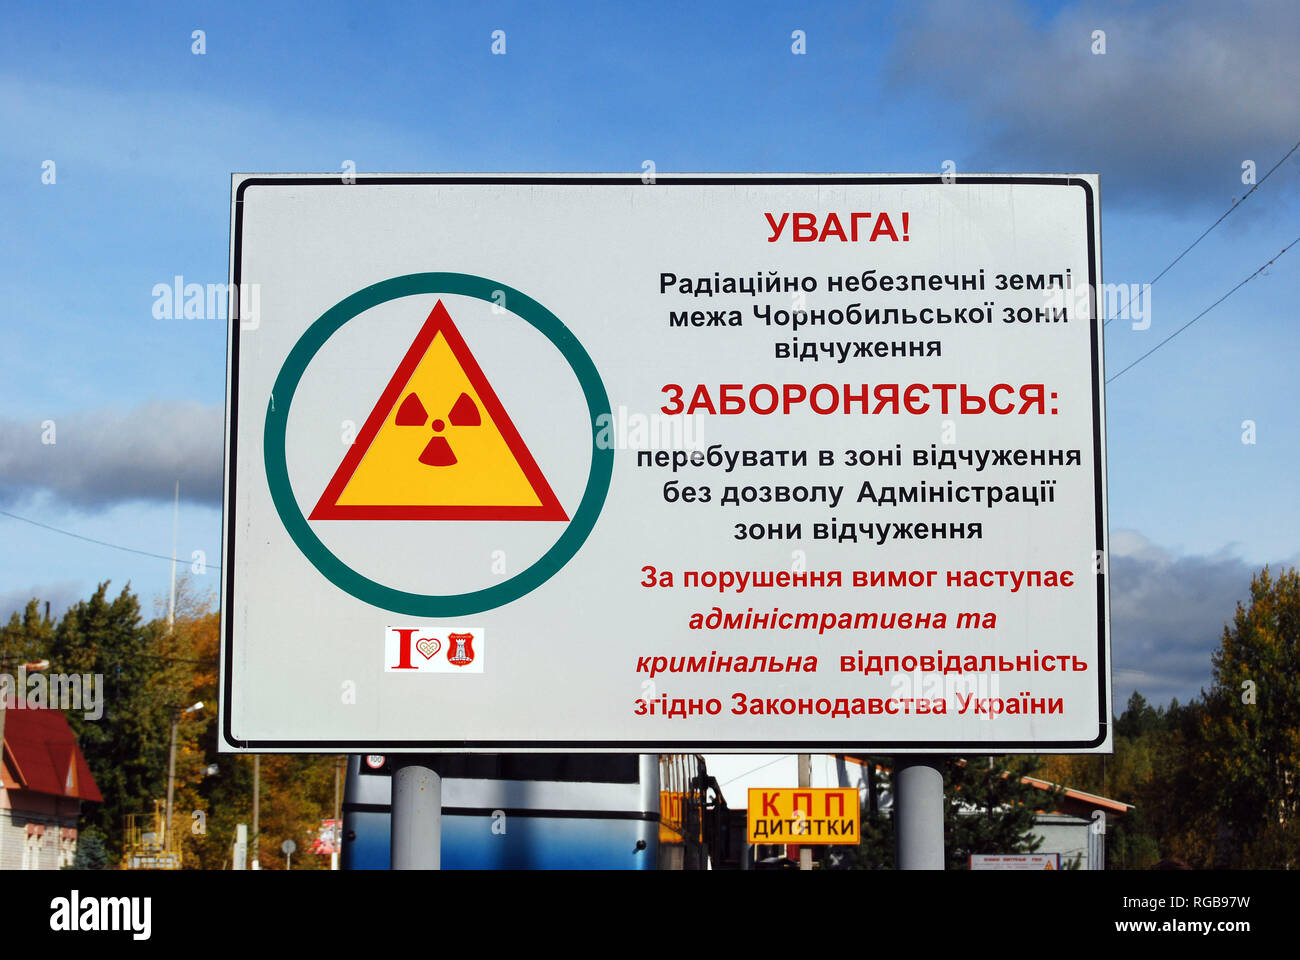 Signposts at the edge of the Chernobyl Exclusion Zone in Ukraine - Stock Image